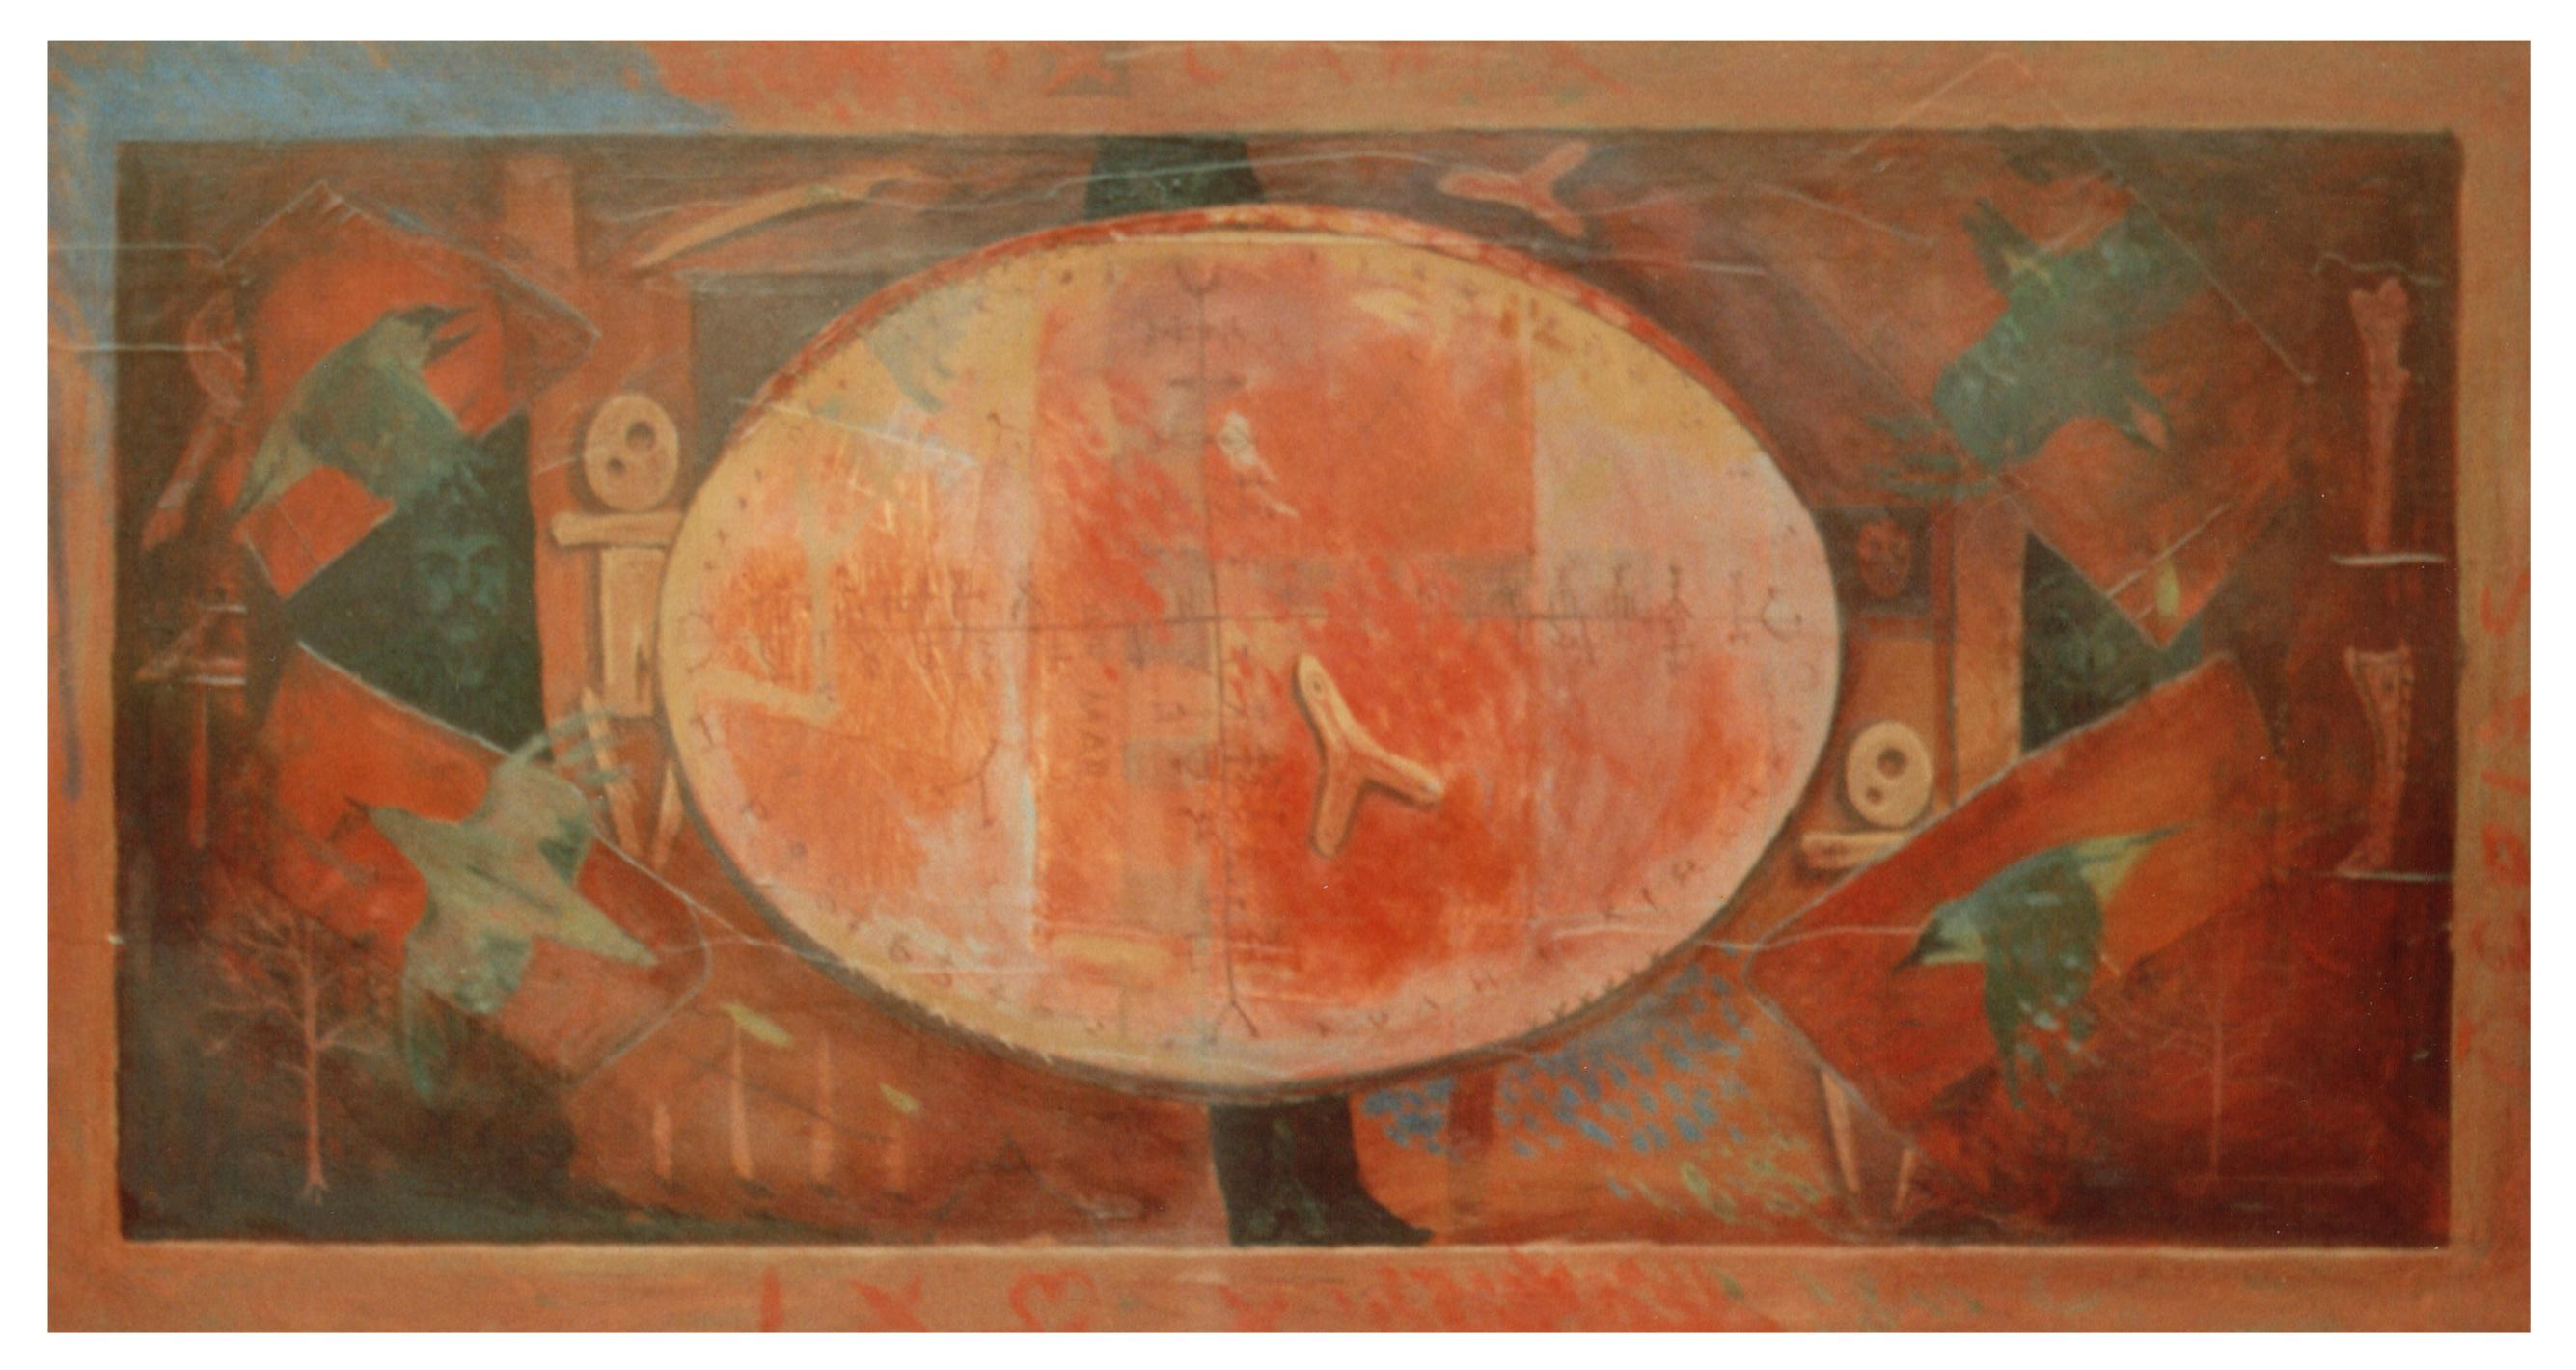 The Shaman's Drum 50x80cm £1950